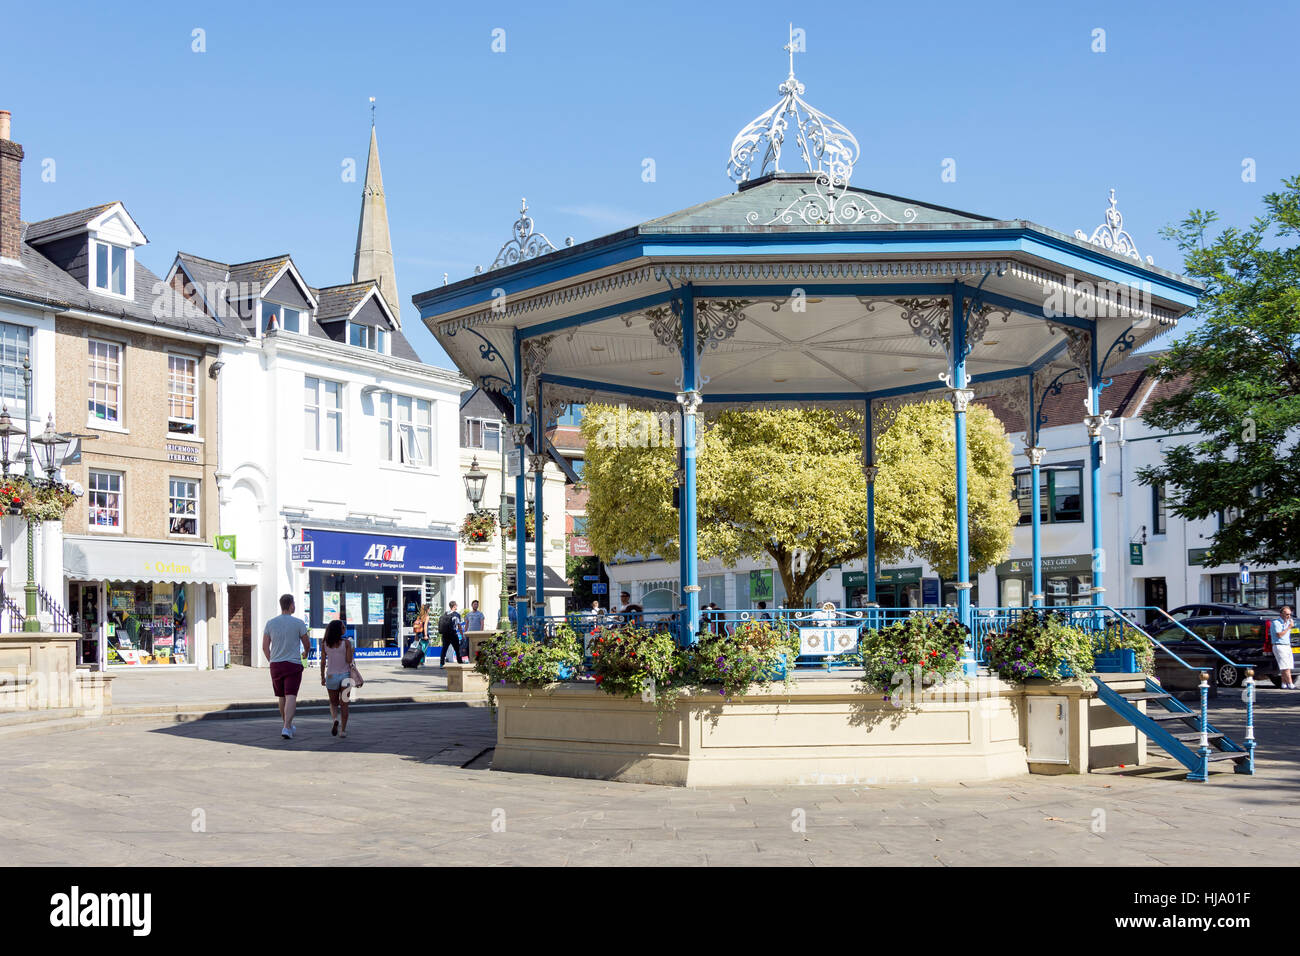 The Bandstand, The Carfax, Horsham, West Sussex, England, United Kingdom - Stock Image